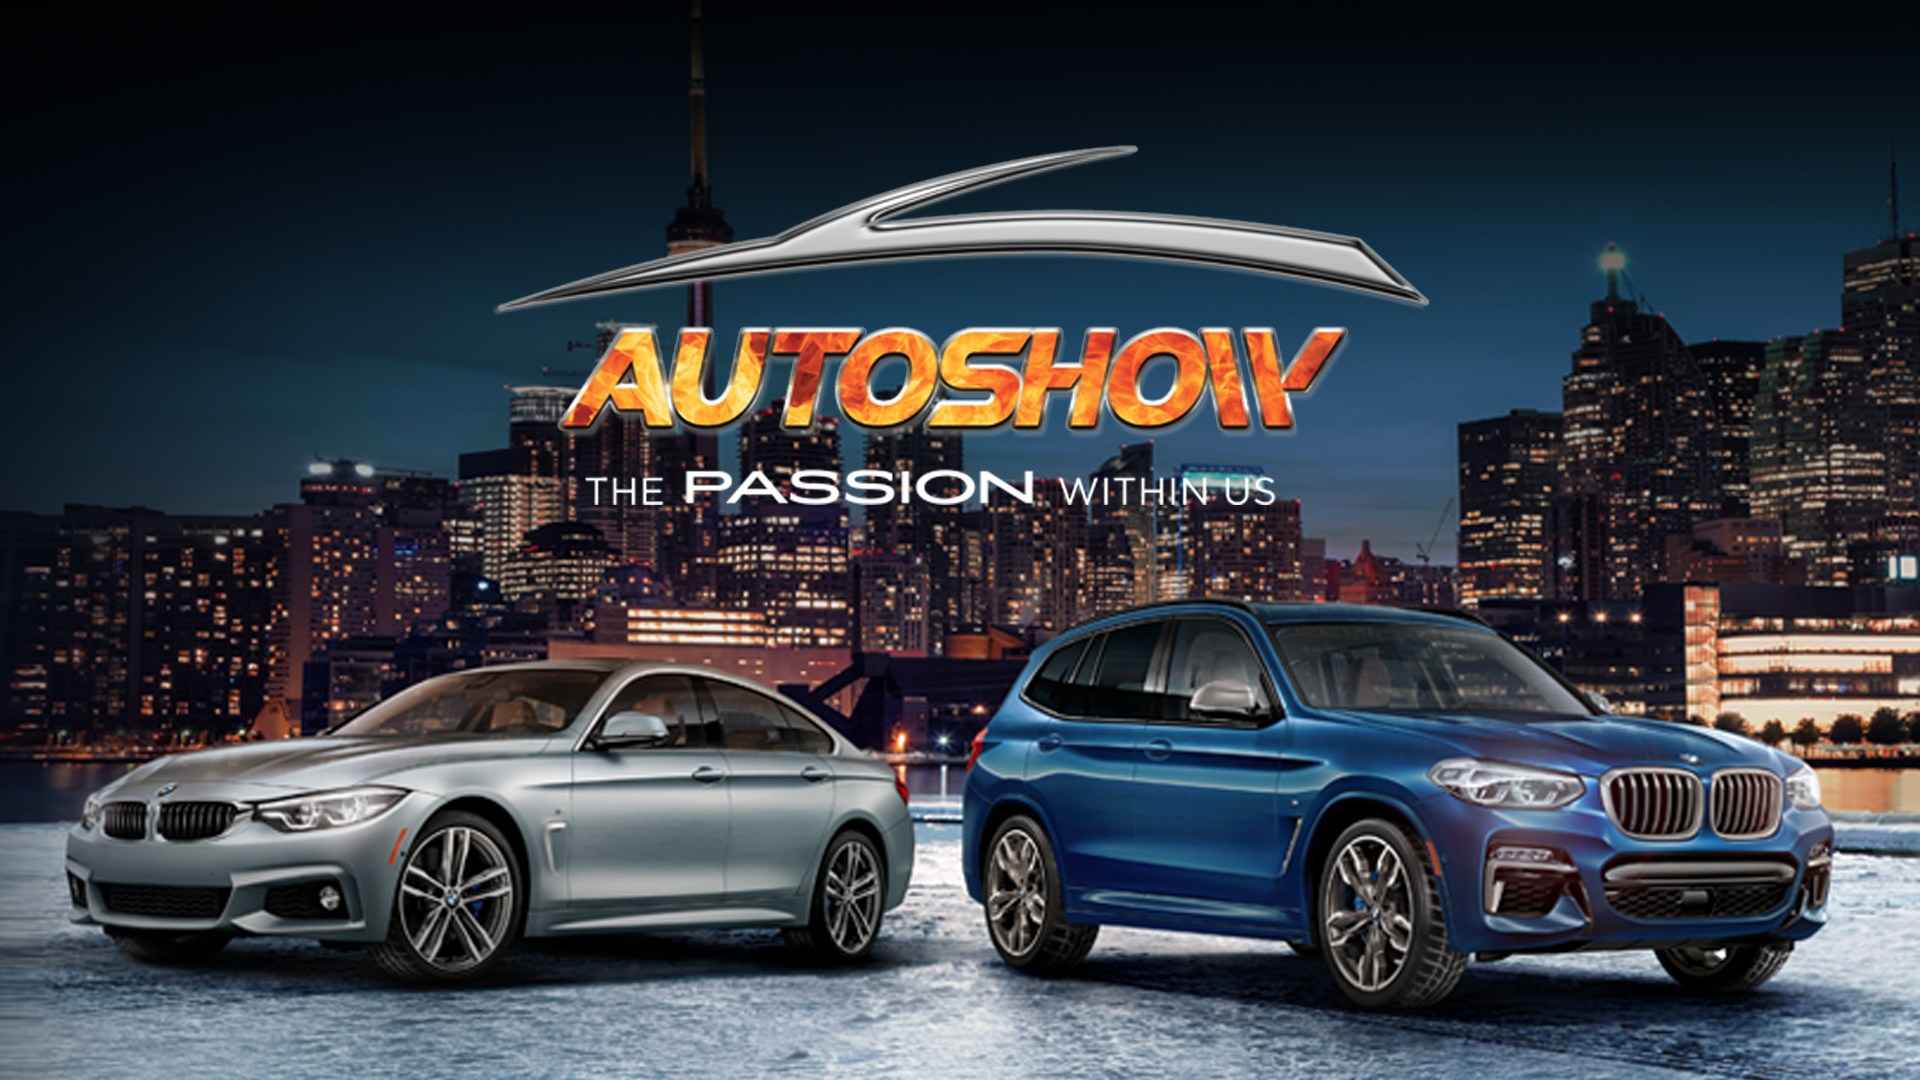 The Ultimate BMW Auto Show Event